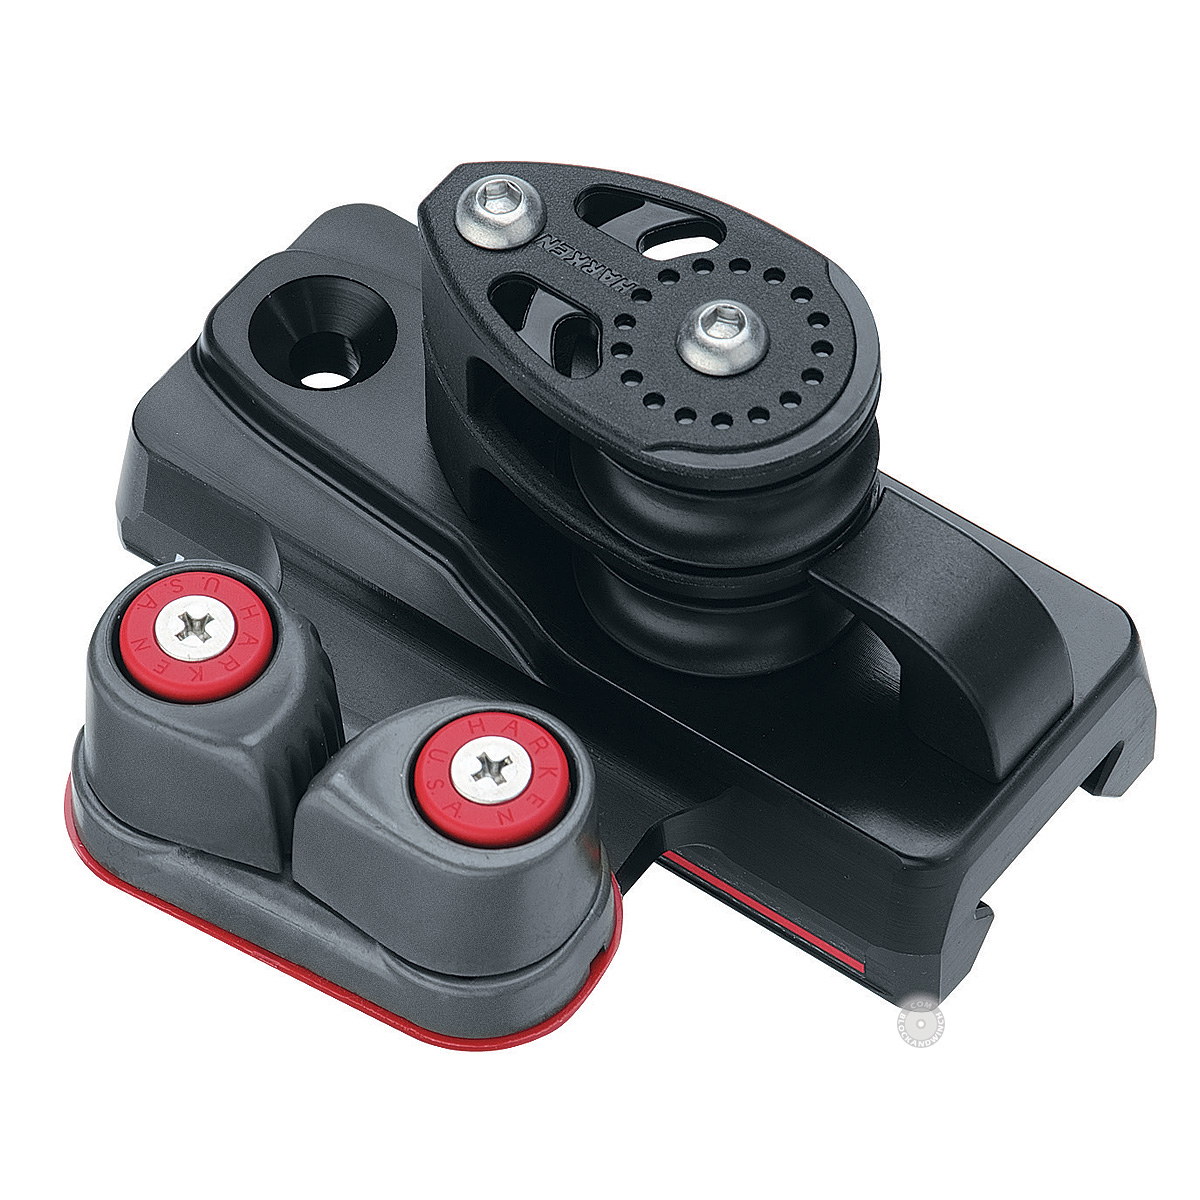 Harken 32mm. Big Boat E3256 End Control - 4:1